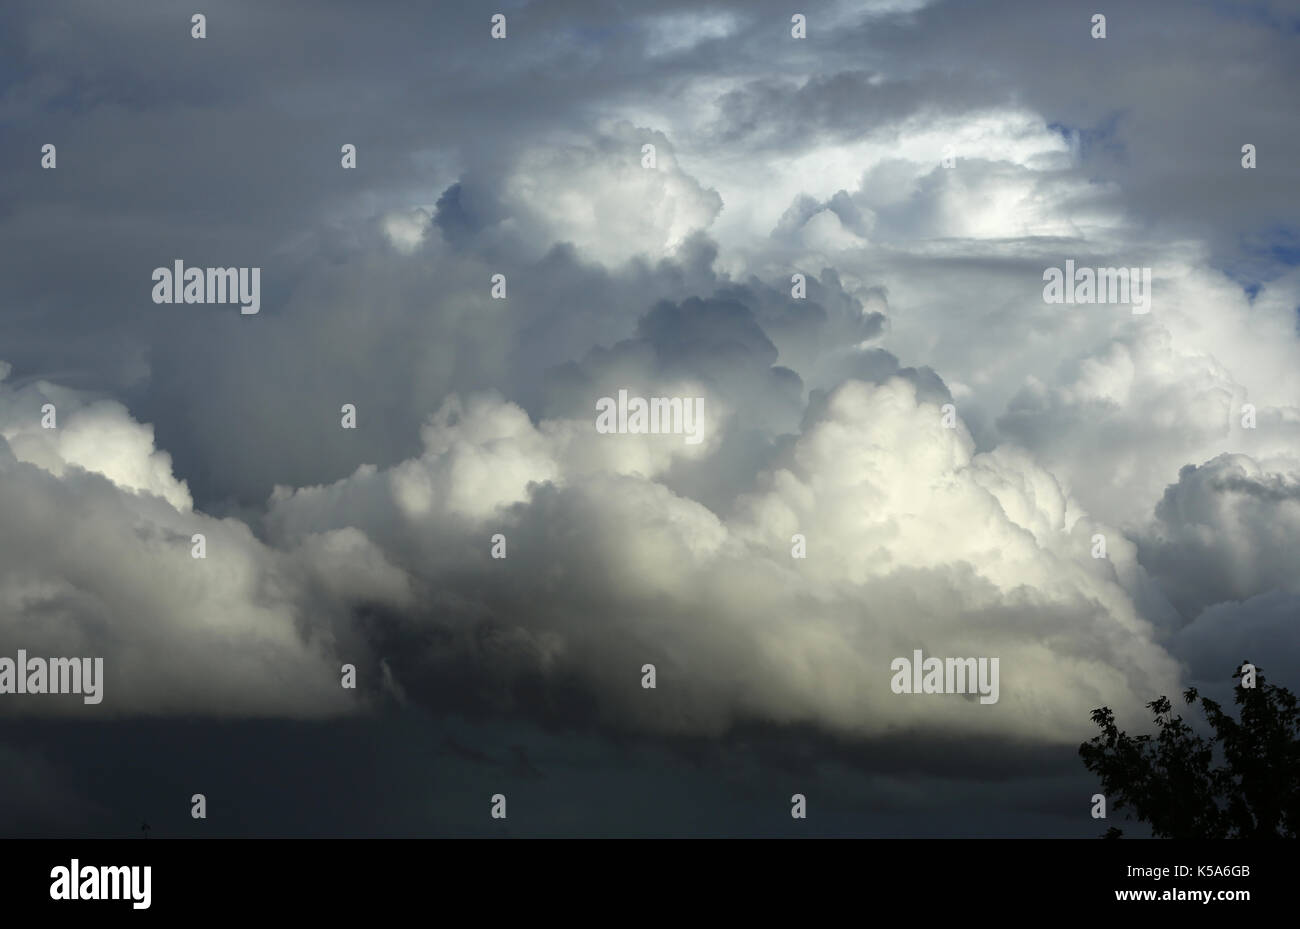 Cumulonimbus strorm clouds building on a warm summer's afternoon. - Stock Image